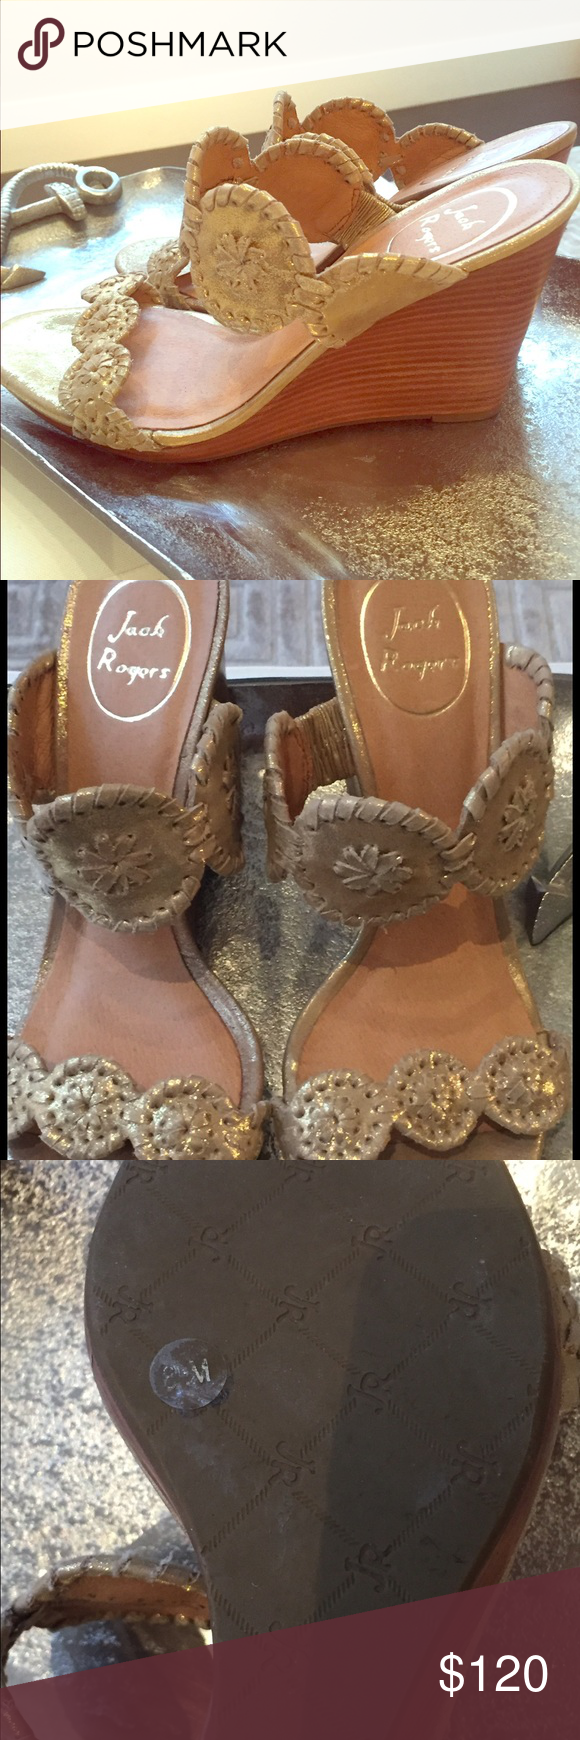 6d6f426ce78 Jack Rogers Luccia Wedge Sandals in Platinum Gorgeous gold Jack Rogers  wedges worn once to a wedding. Nearly perfect condition with a few minor  scuff marks ...